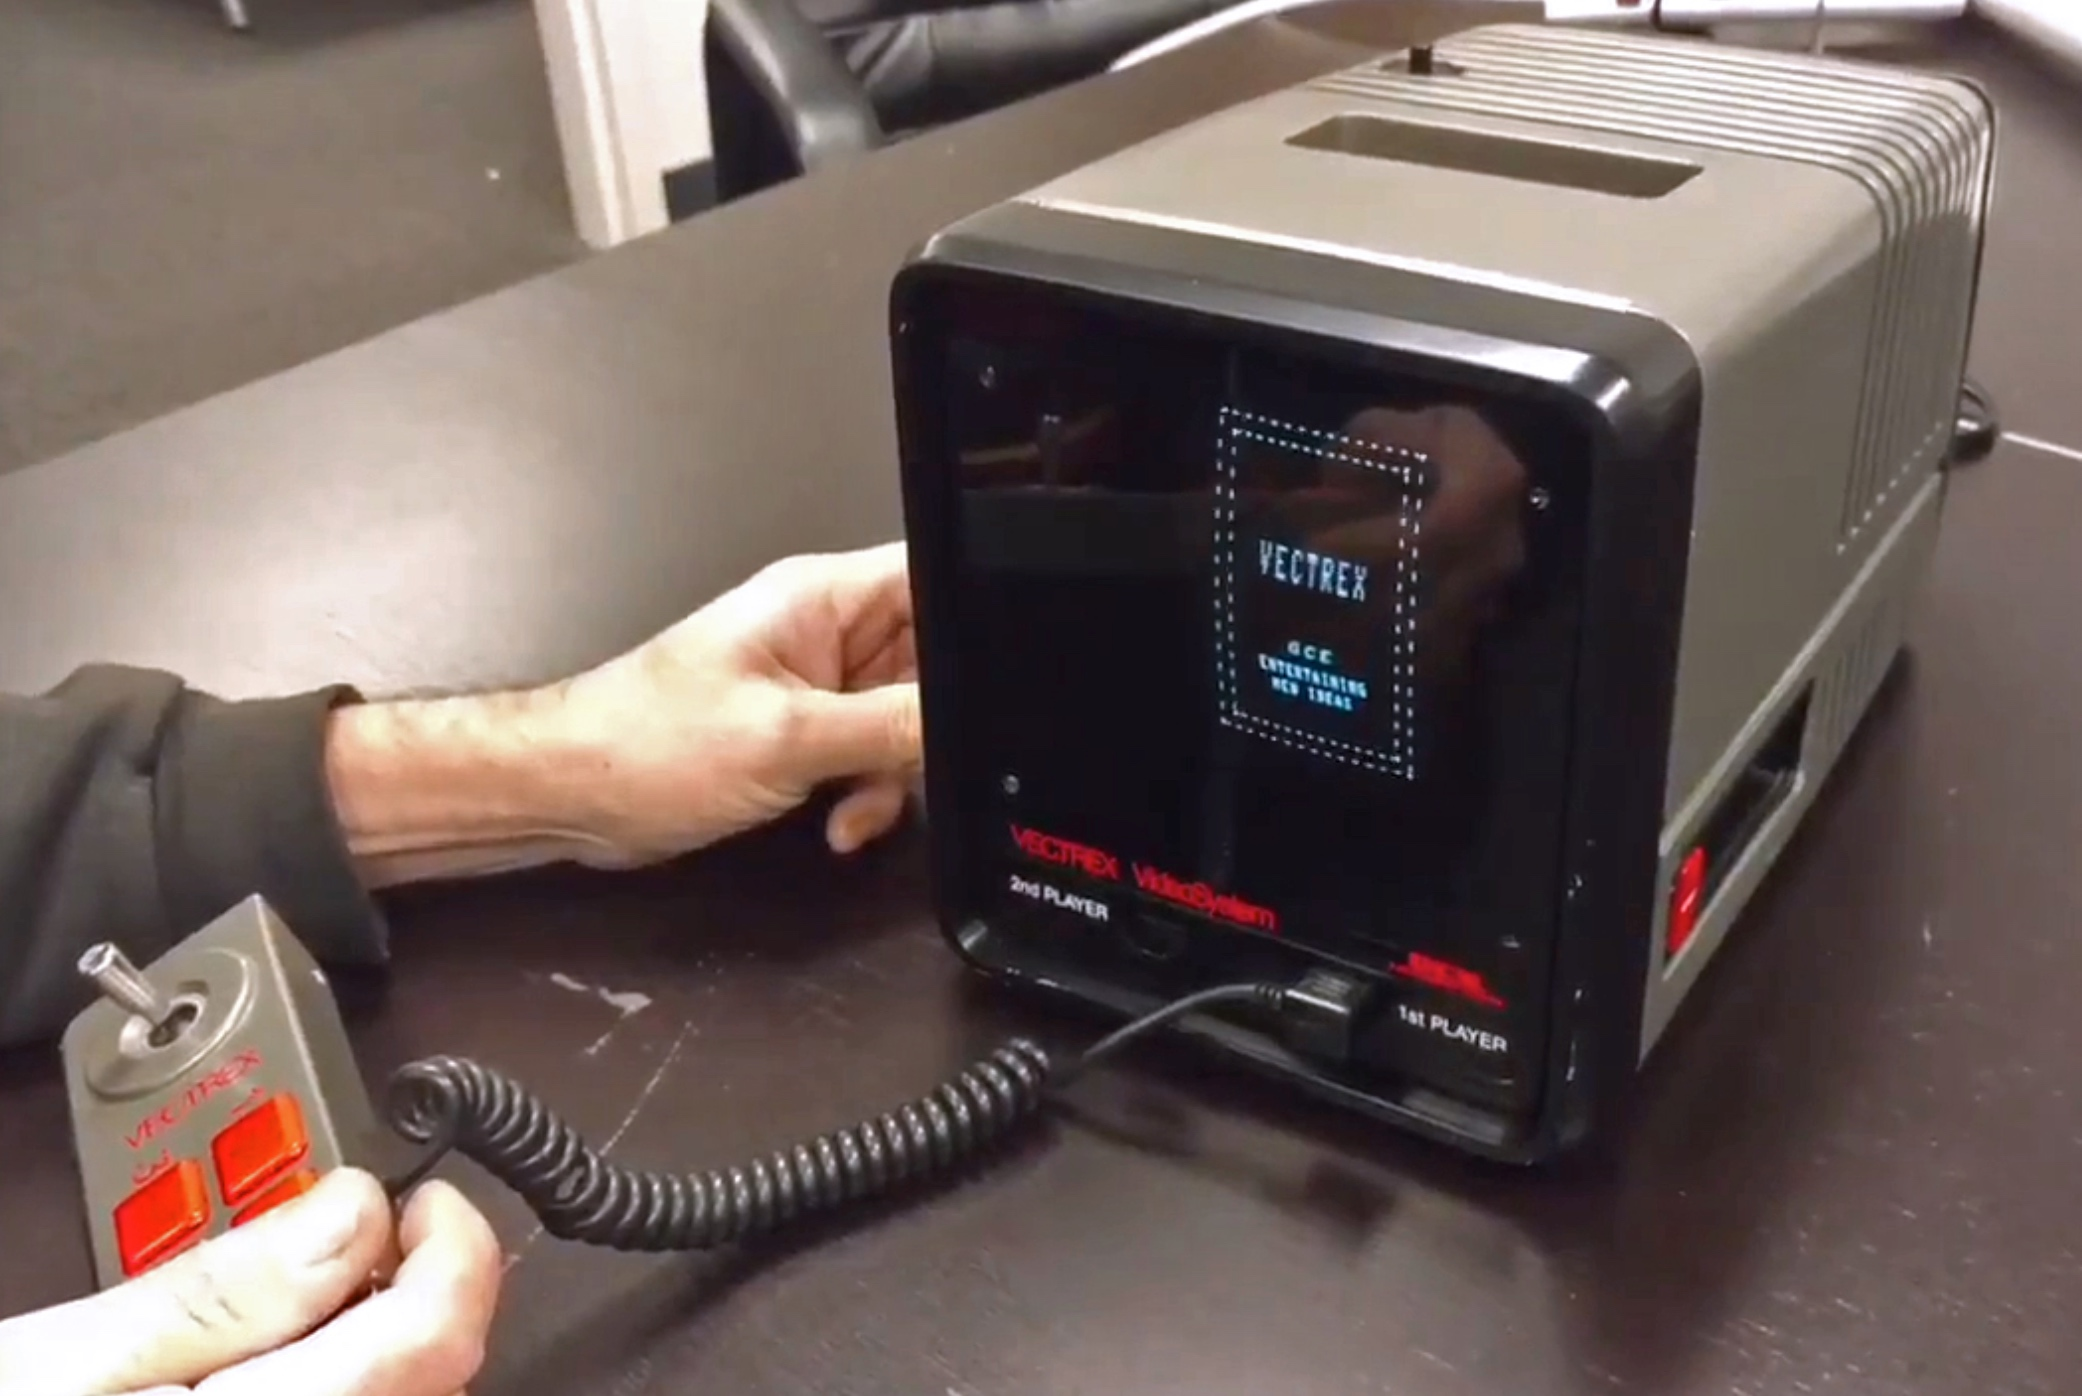 Remember the Vectrex videogame system from the 1980s? It had a little brother